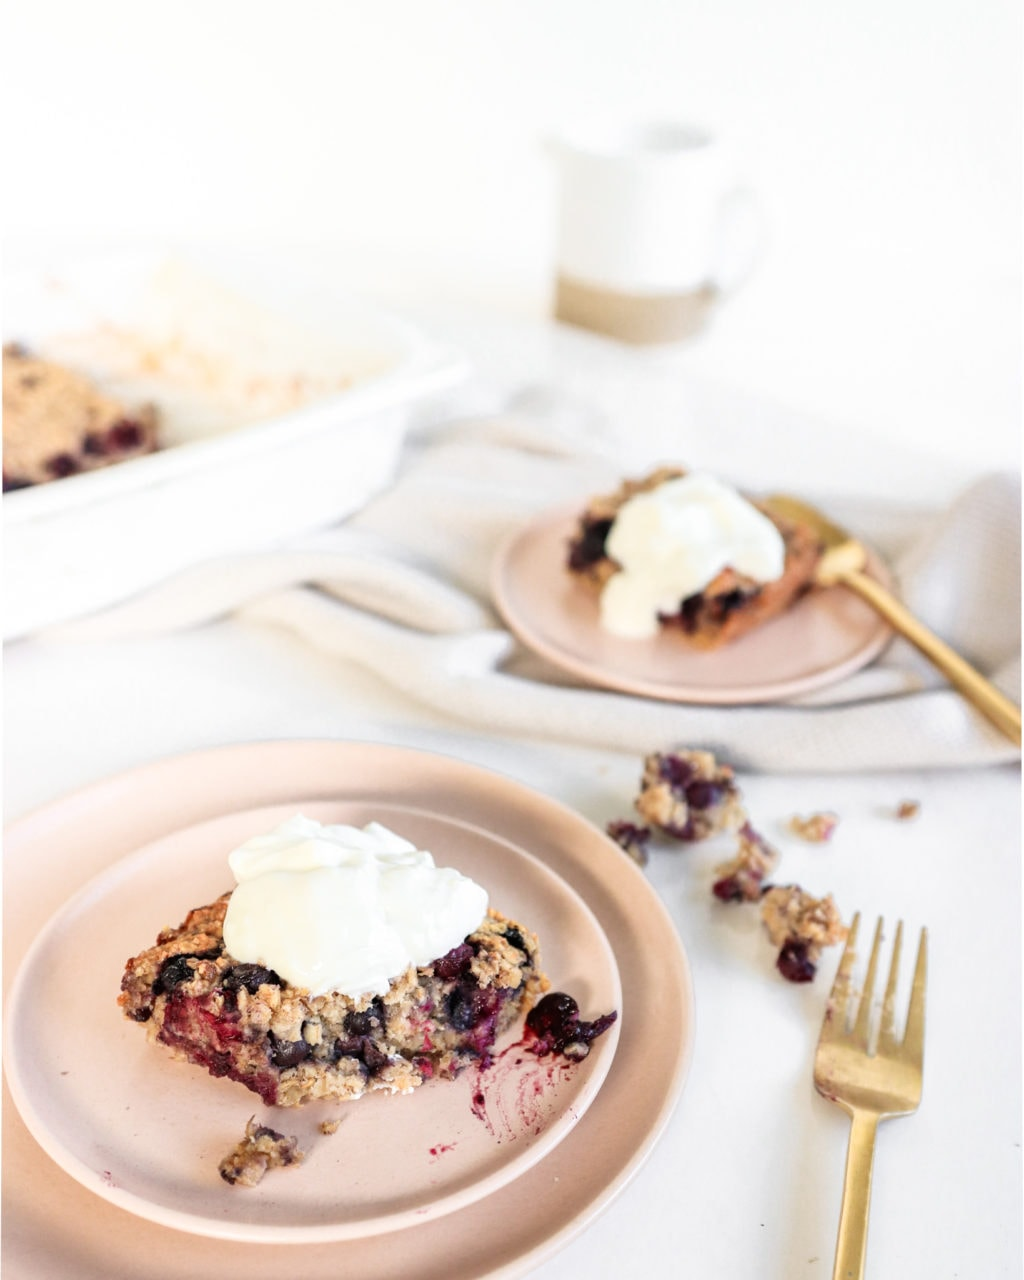 Blueberry baked oatmeal served onto two pink plates topped with Greek Yogurt. Ingredients include: oats, banana, blueberries, cinnamon, maple syrup.